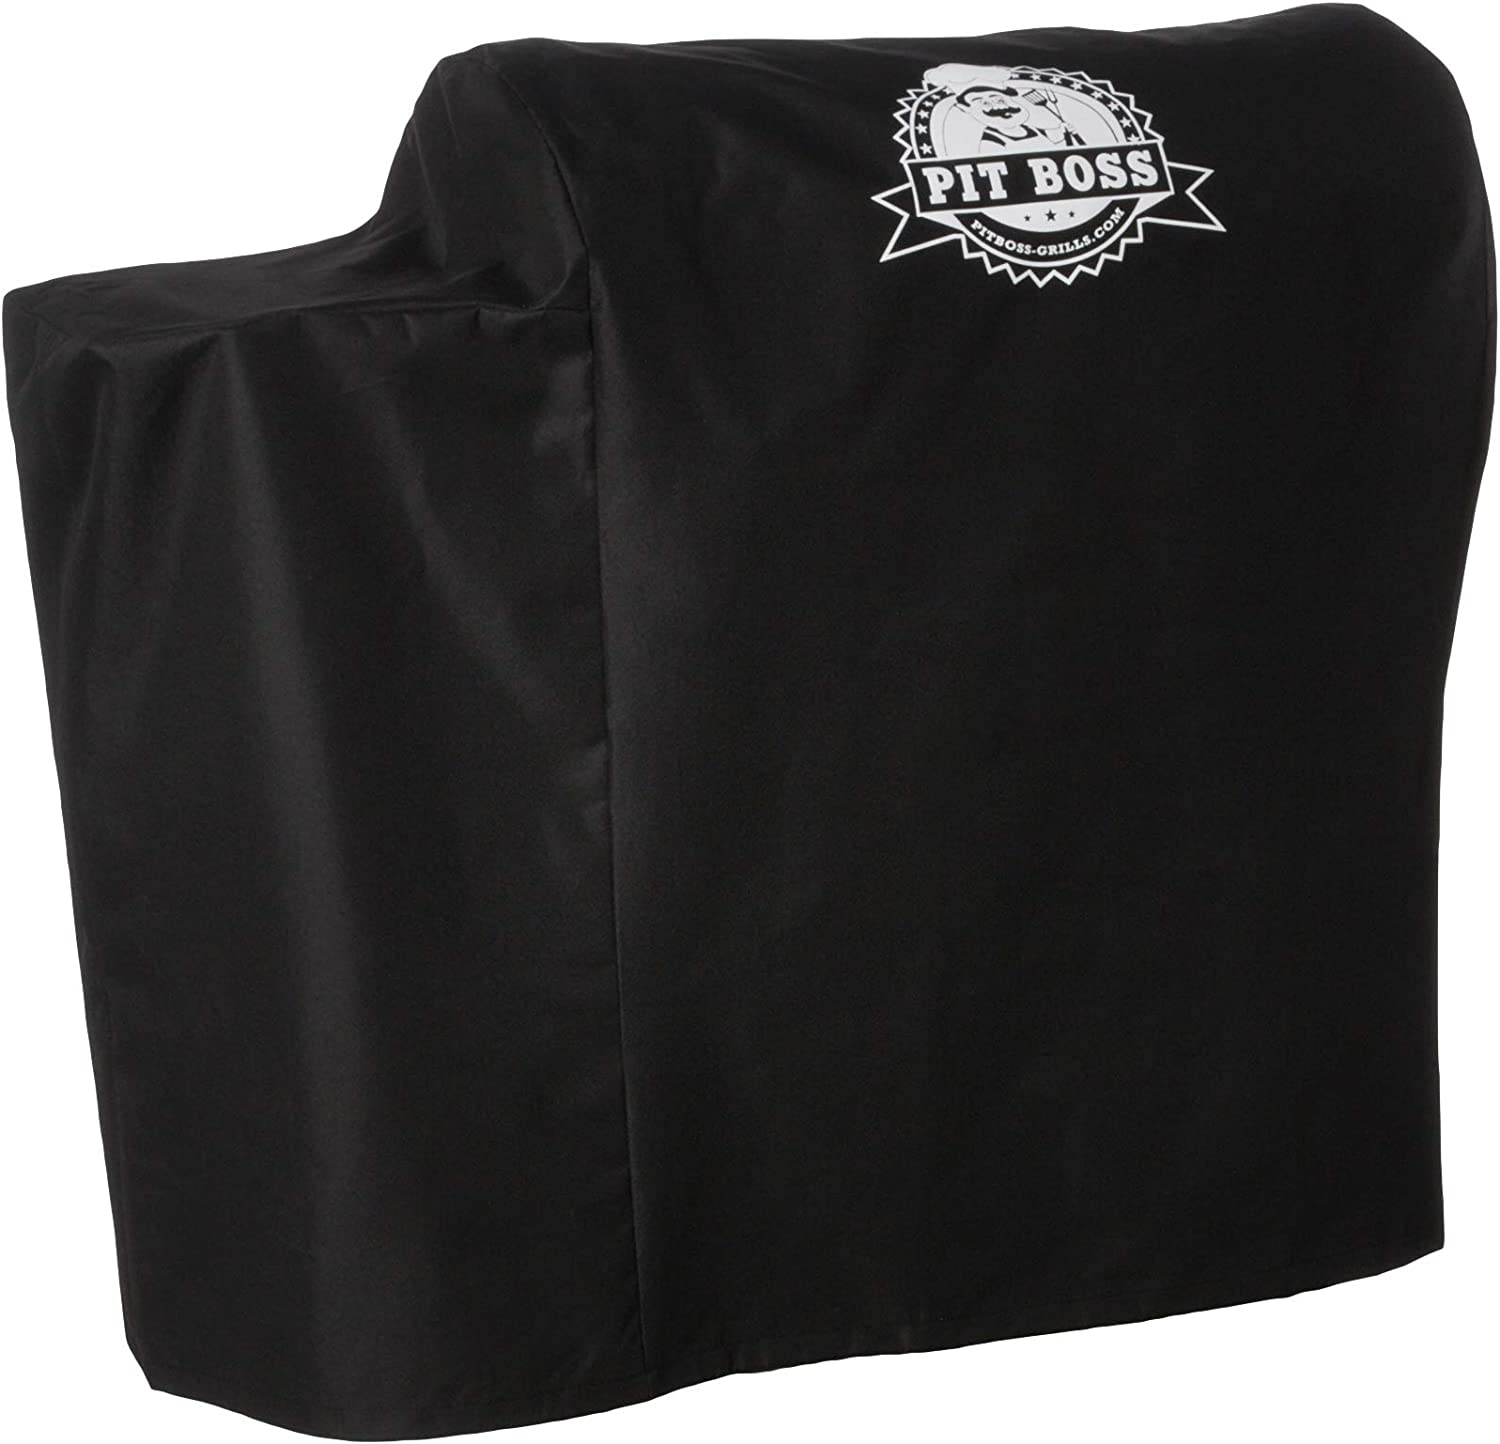 """38/"""" BBQ Grill Cover For Pit Boss 340FB,440TG1,71340,71344 Wood Pellet Grills"""